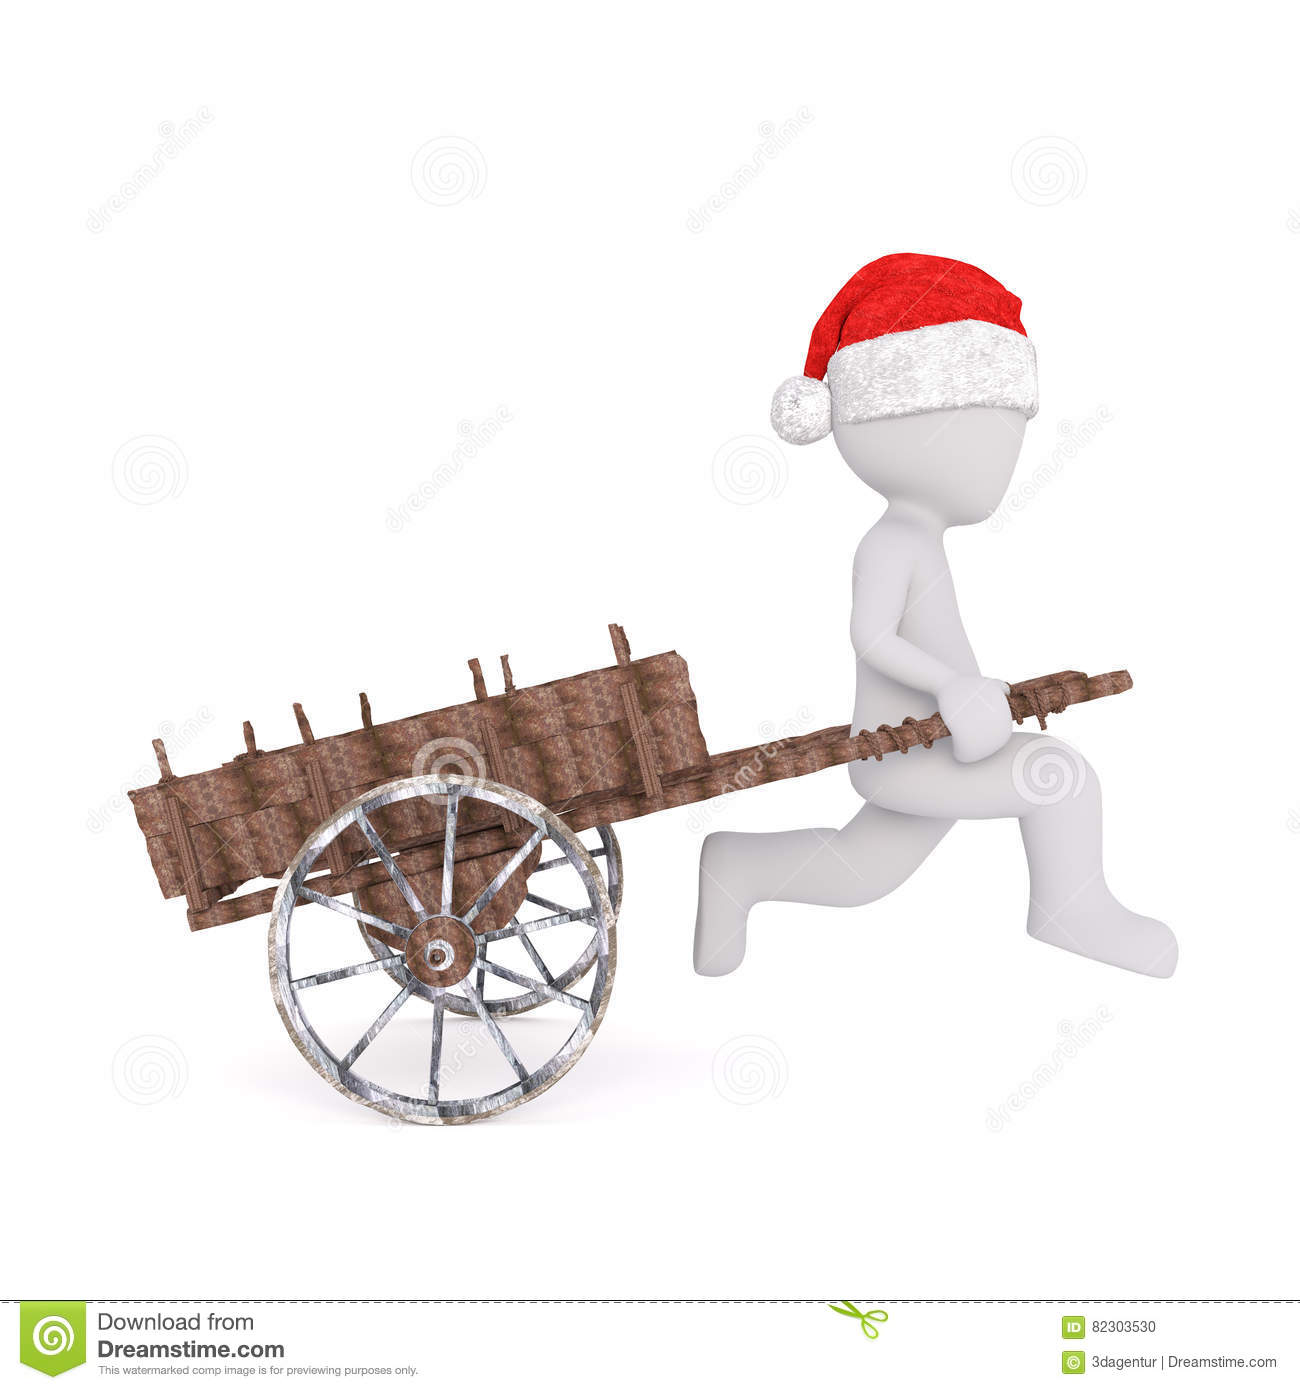 ffdfcd4b5854c Side view of 3d toon in Santa hat pulling retro wooden cart on white. More  similar stock illustrations